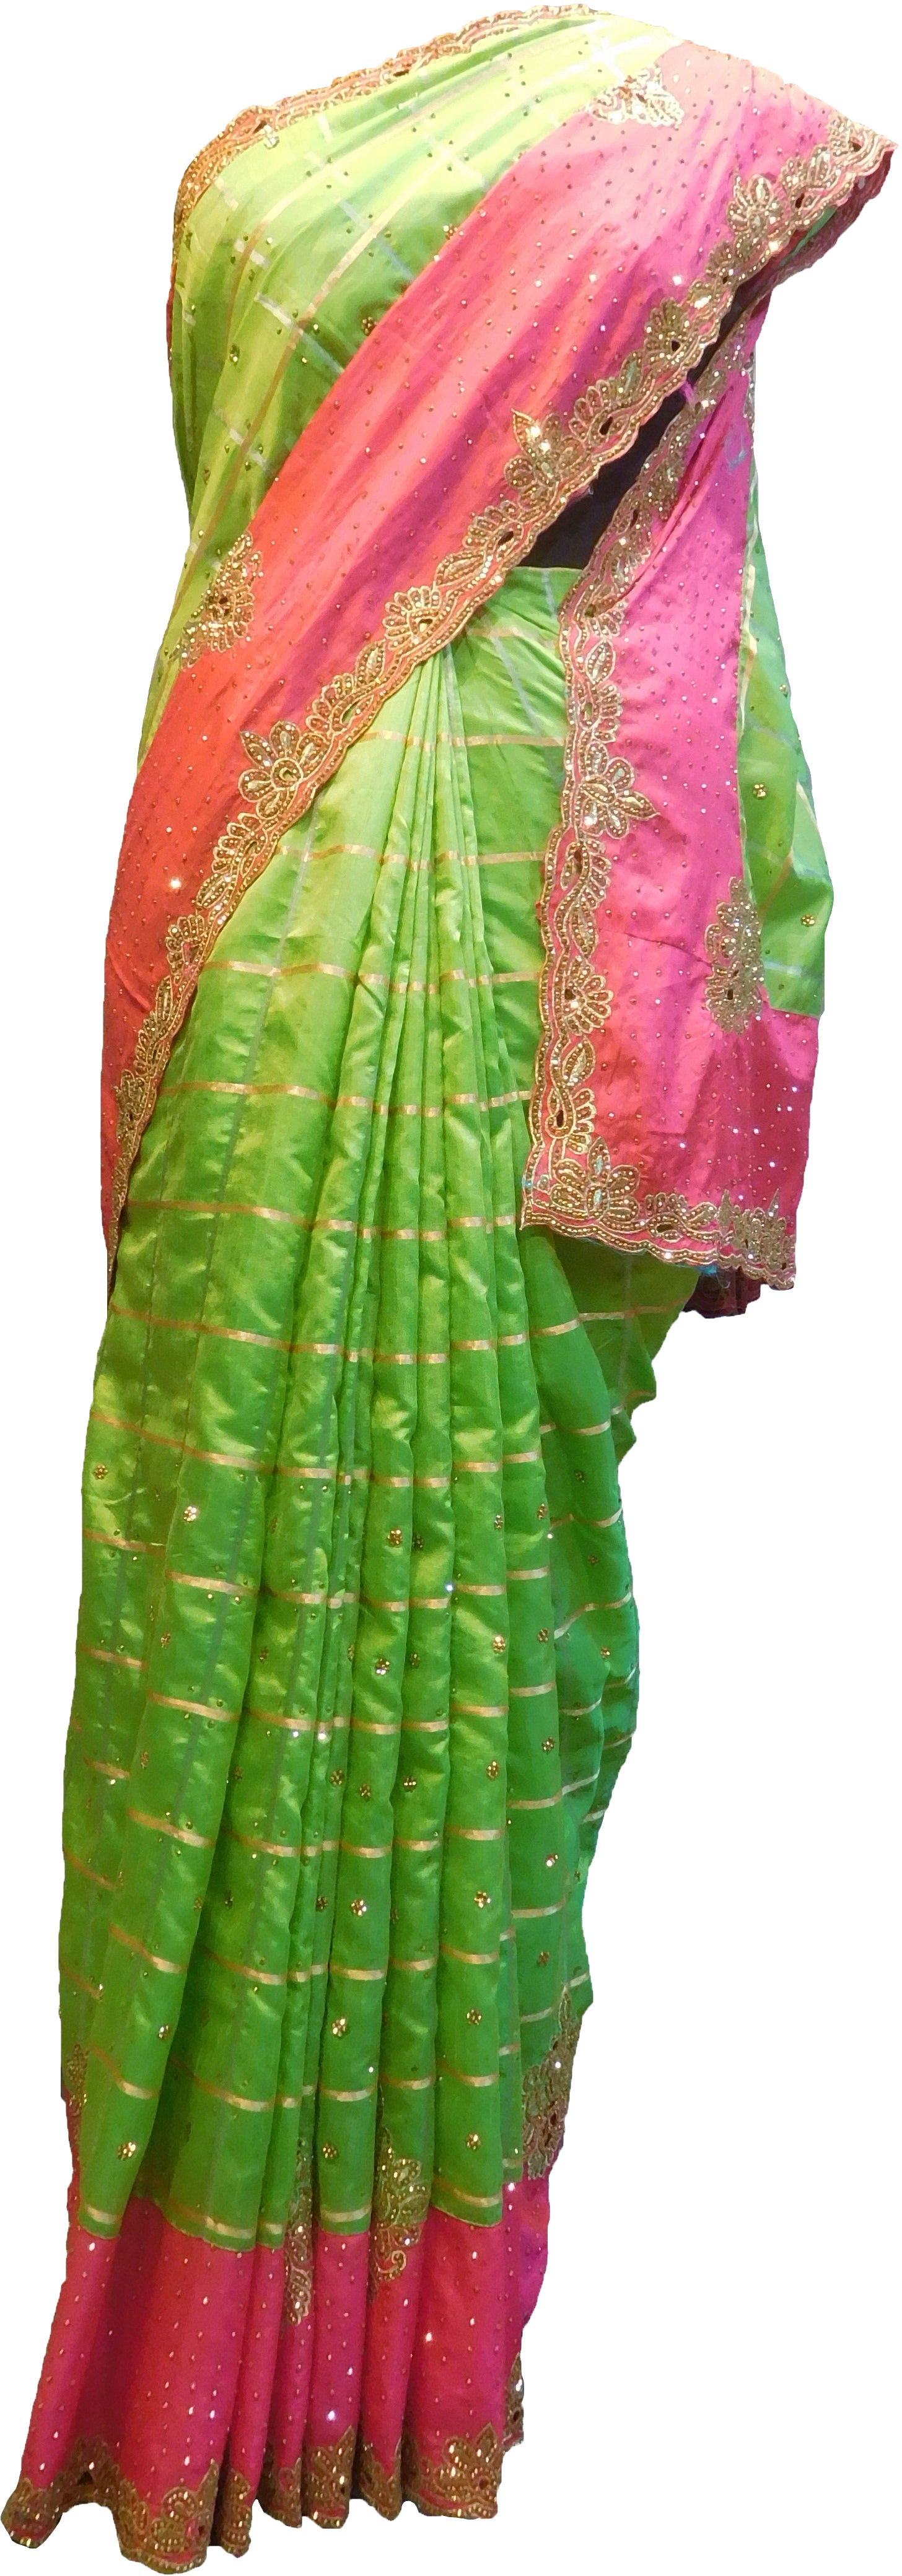 SMSAREE Green & Pink Designer Wedding Partywear Silk Stone & Zari Hand Embroidery Work Bridal Saree Sari With Blouse Piece F298